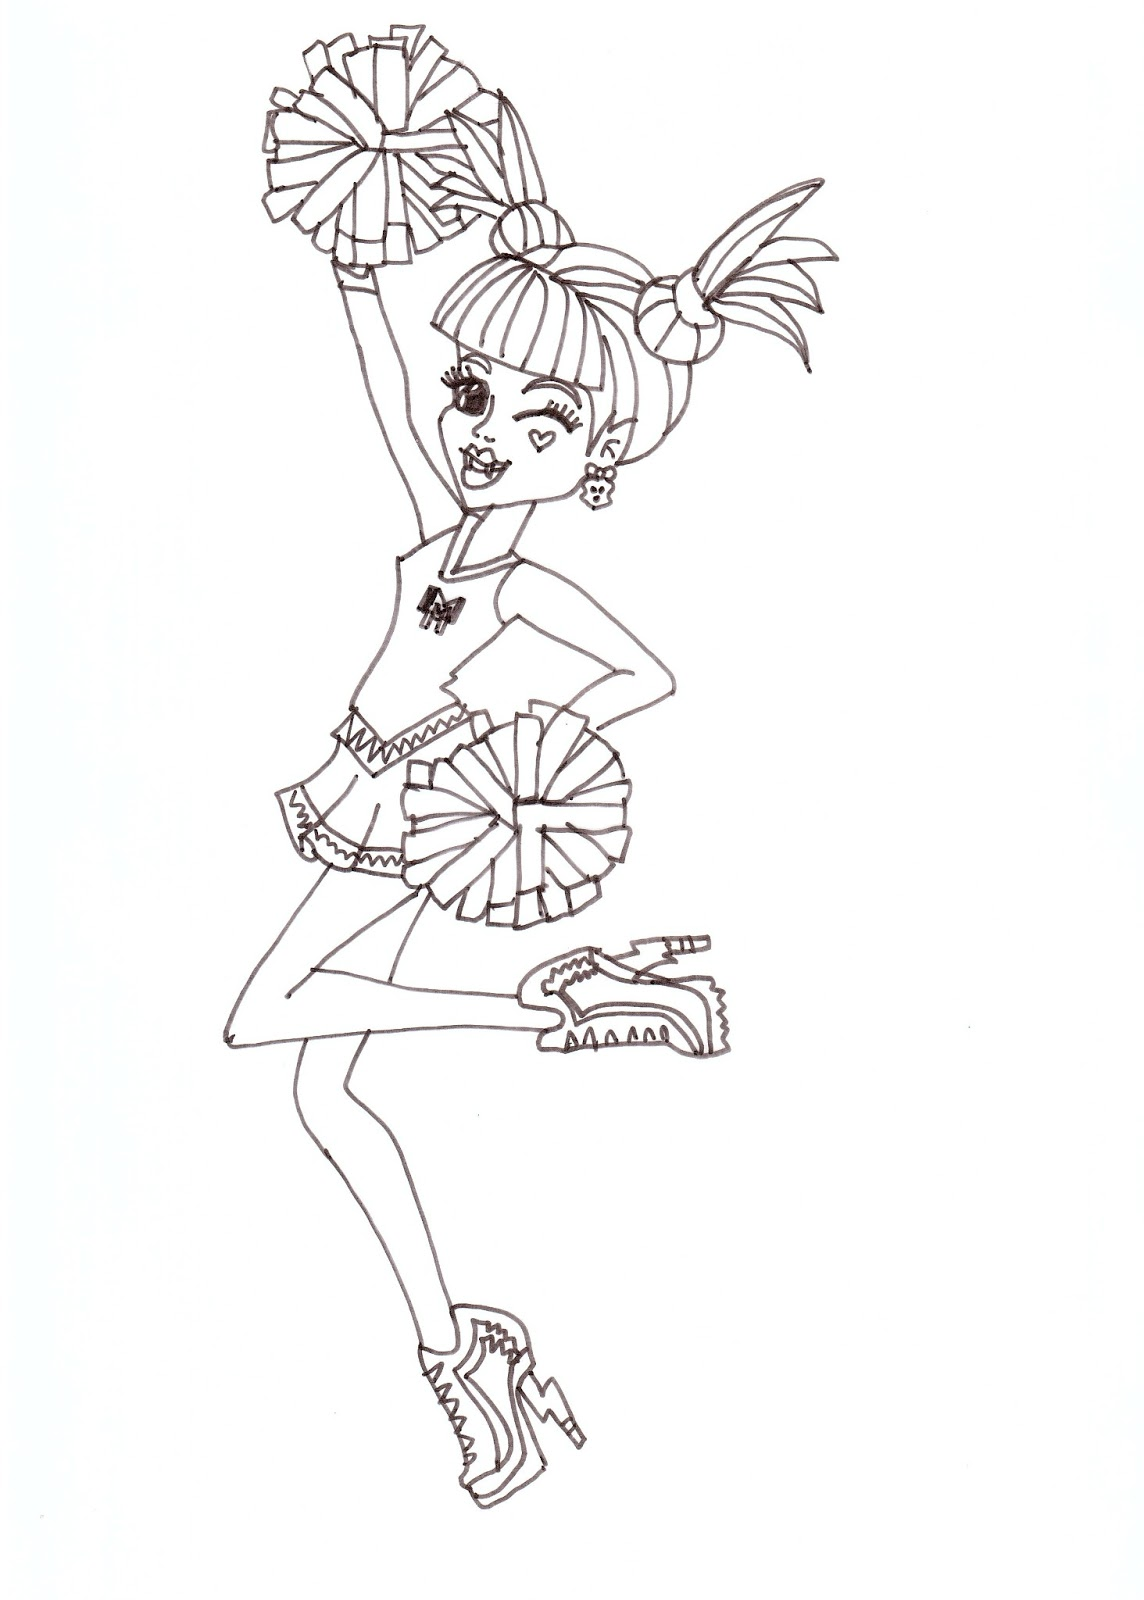 Draculaura Fearleading Coloring Sheet CLICK HERE TO PRINT Free Printable Monster High